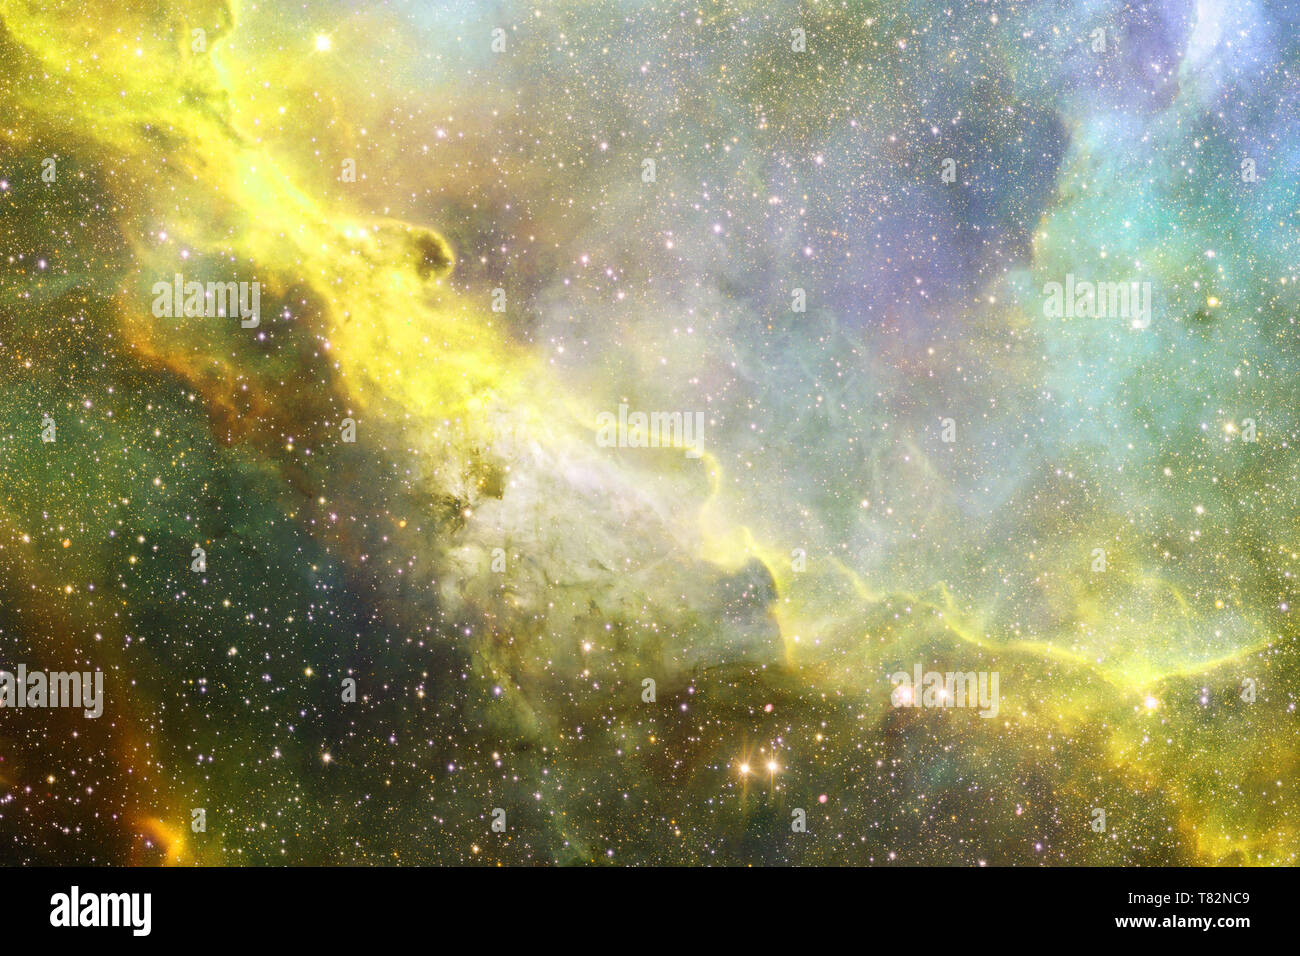 glowing galaxy awesome science fiction wallpaper elements of this image furnished by nasand T82NC9